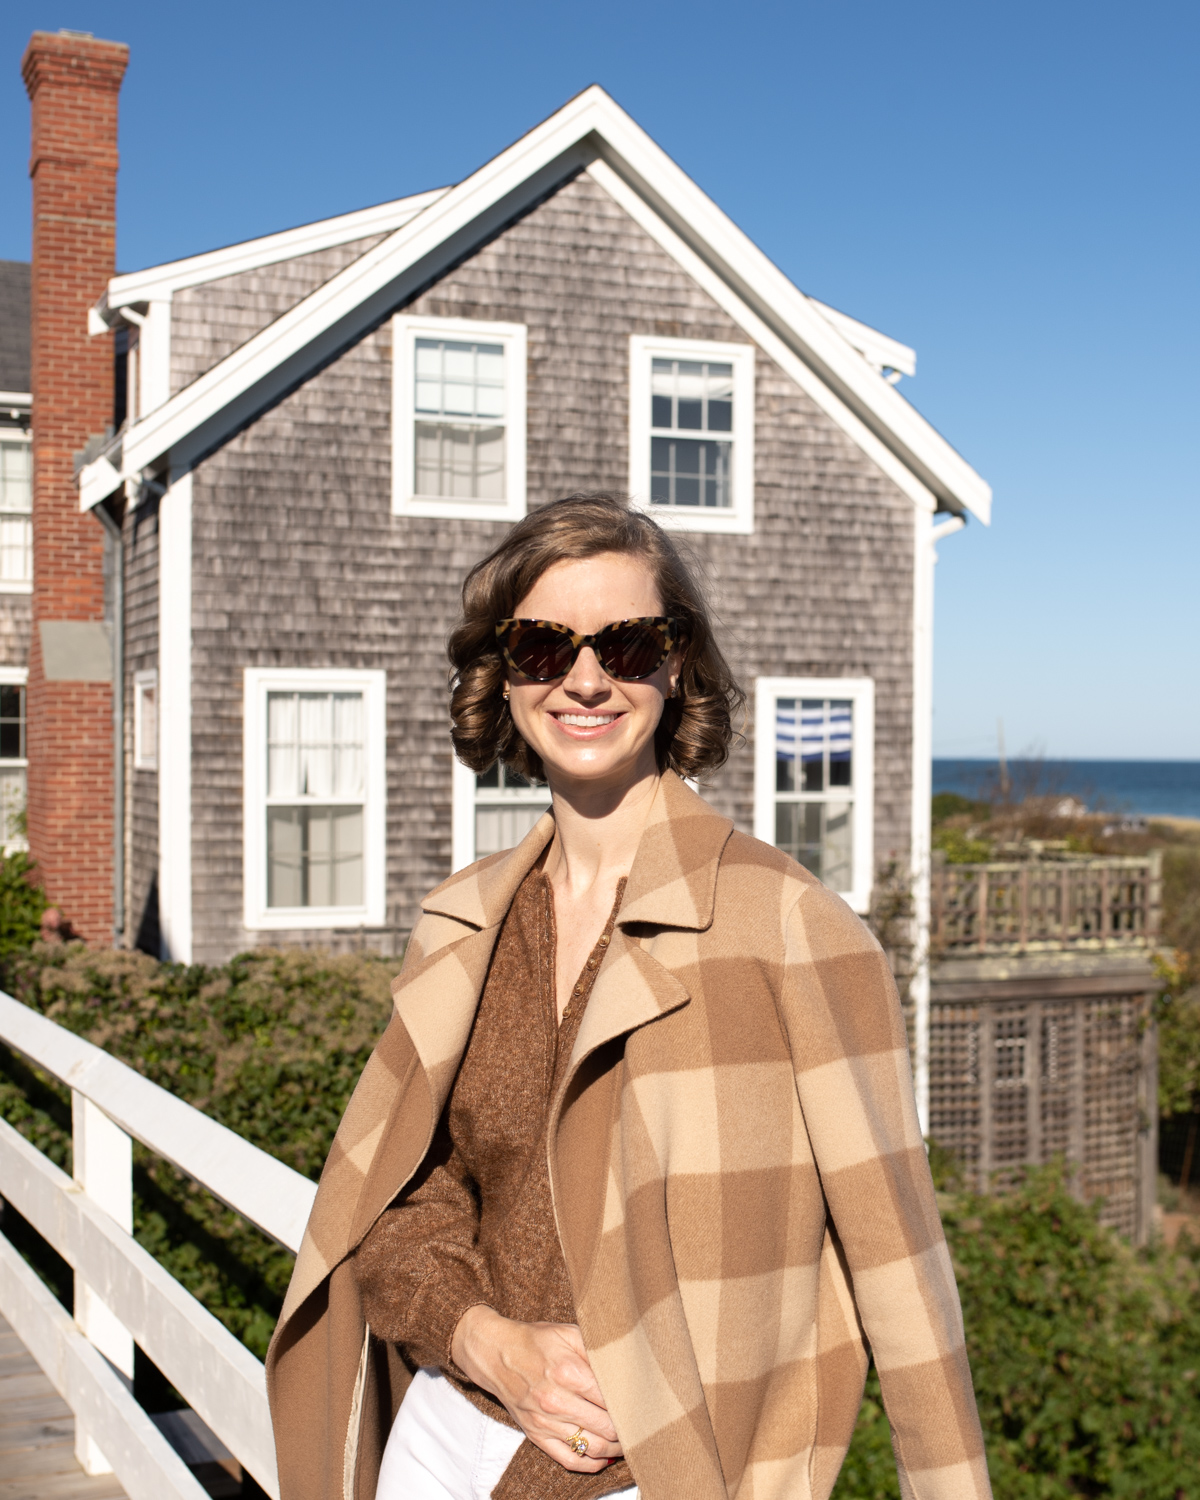 Stacie Flinner Theory Checked Coat Sezane Sweater.jpg